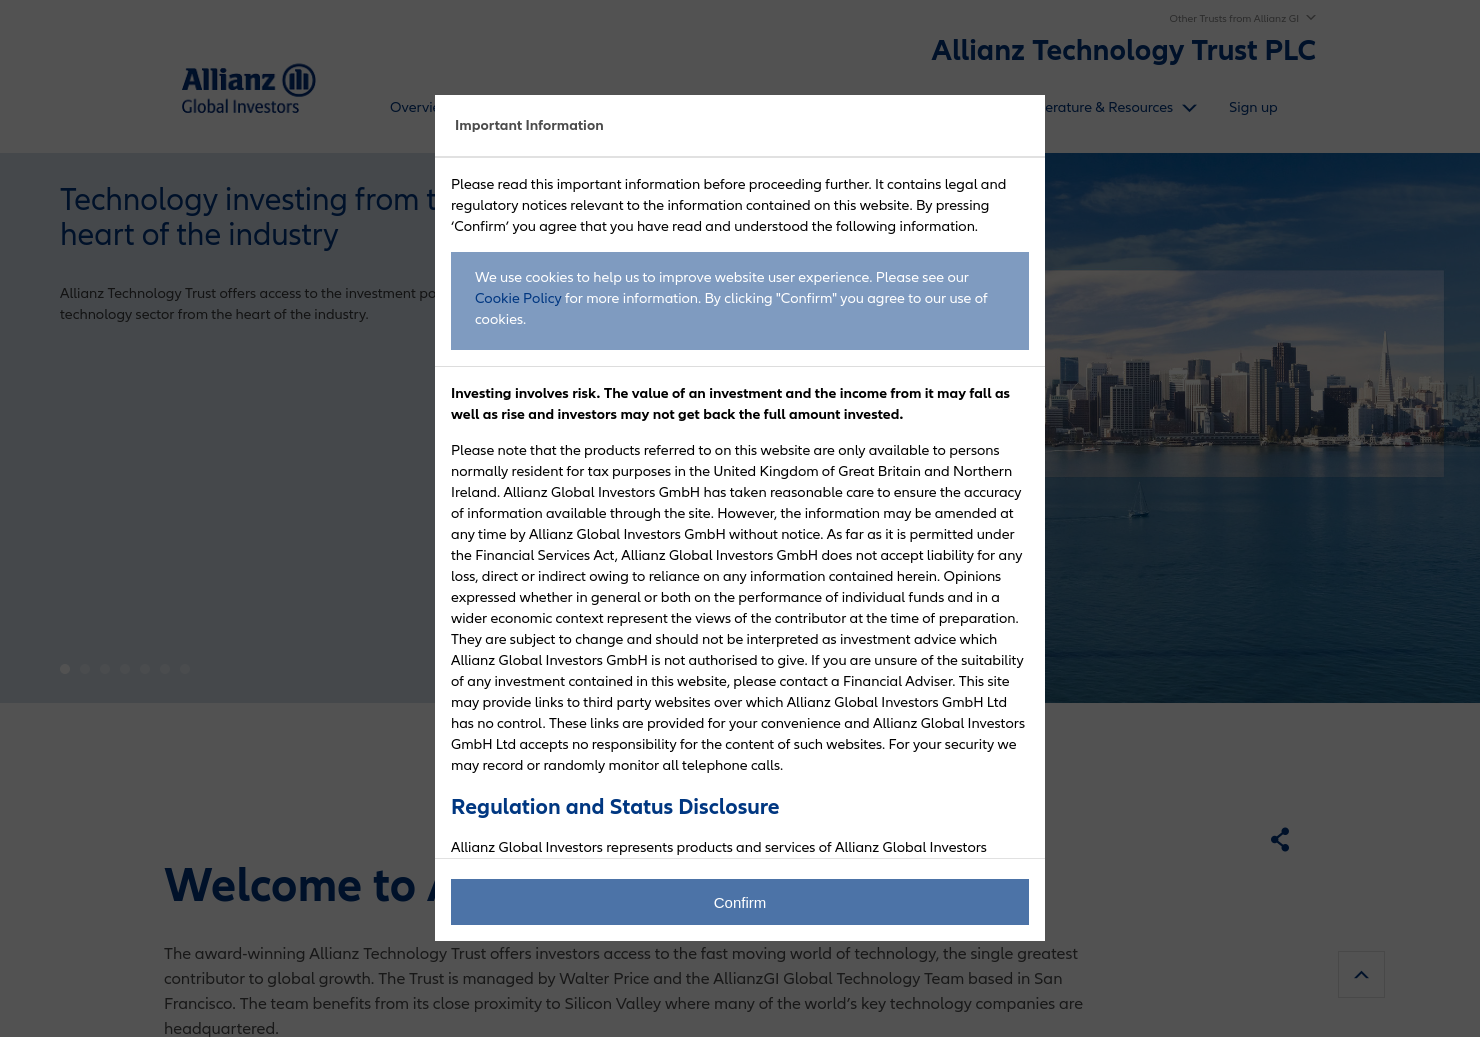 Allianz Technology Trust Home Page